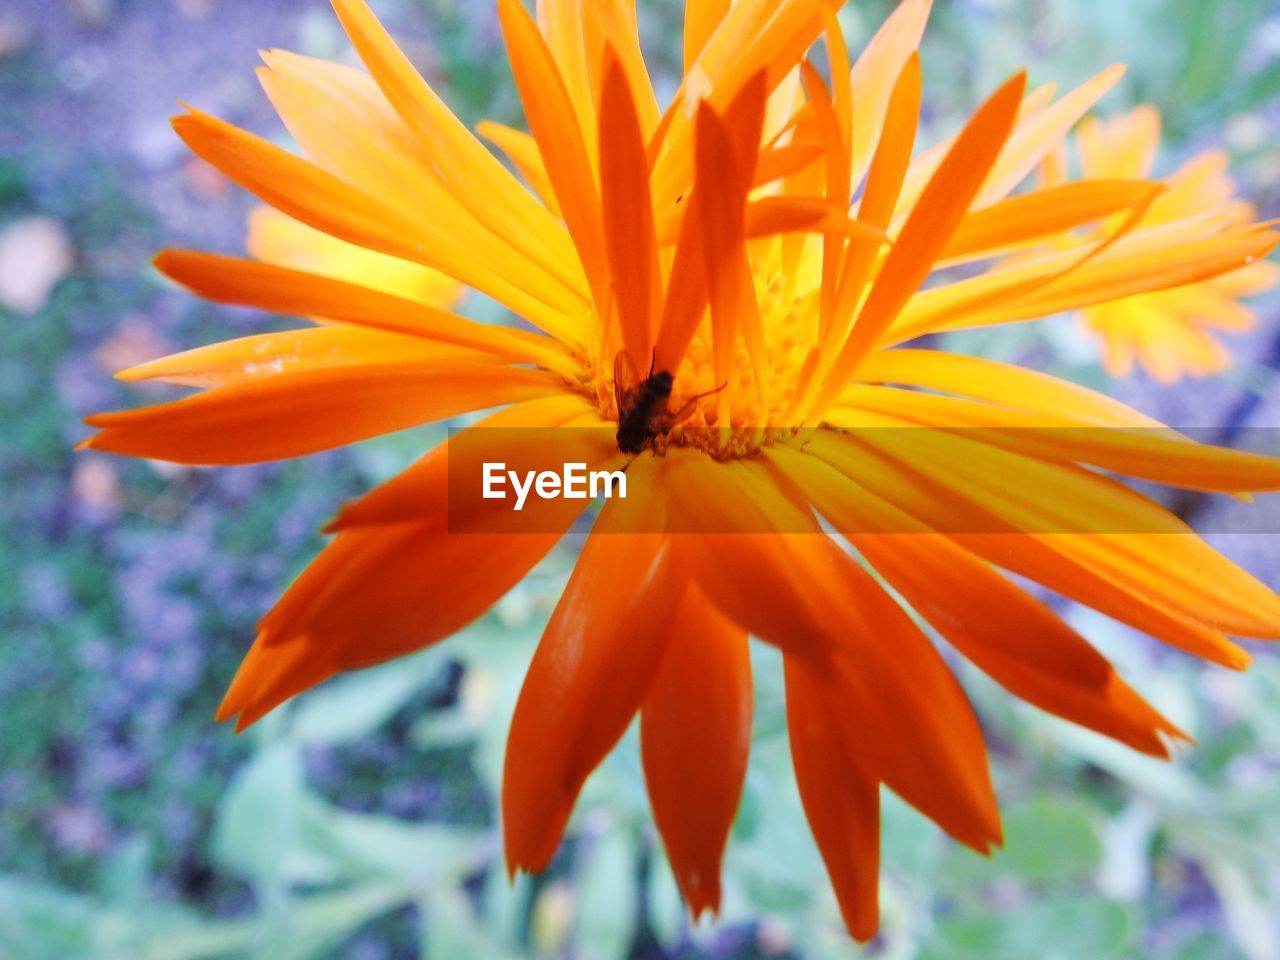 flower, flowering plant, fragility, vulnerability, beauty in nature, petal, flower head, inflorescence, growth, close-up, plant, freshness, orange color, focus on foreground, no people, day, nature, pollen, outdoors